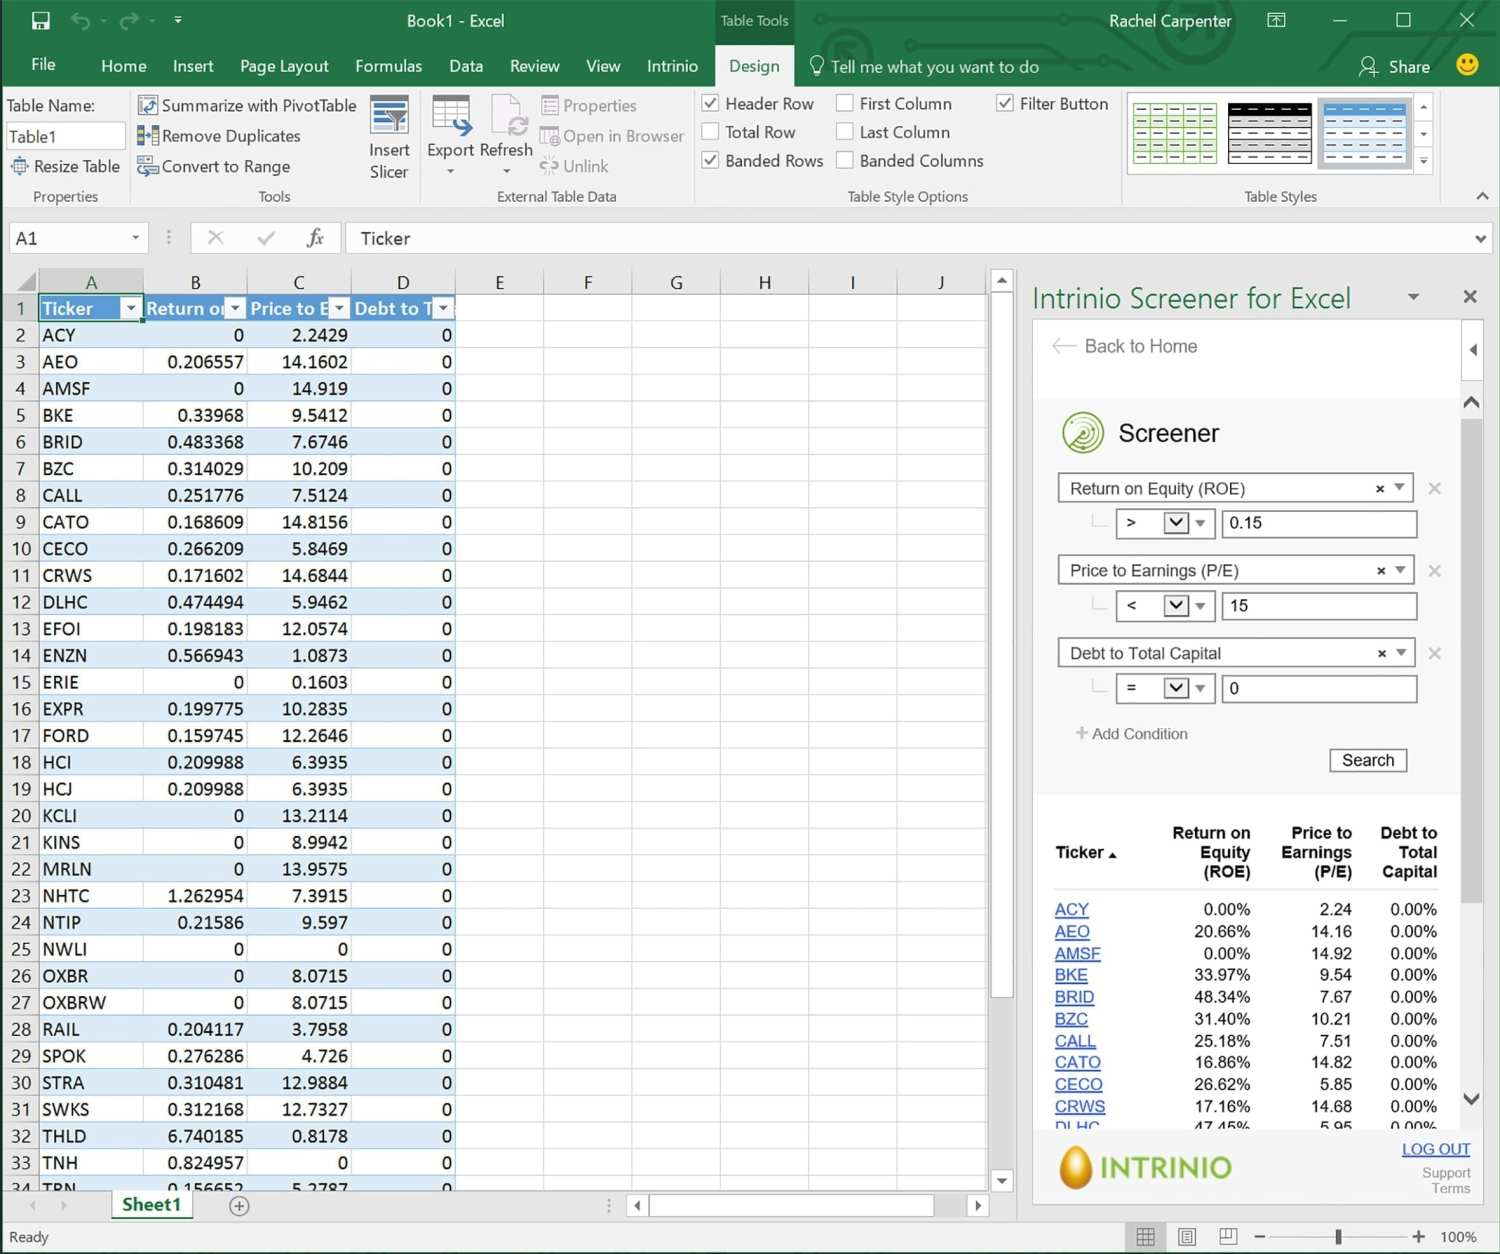 Intrinio excel screenshot